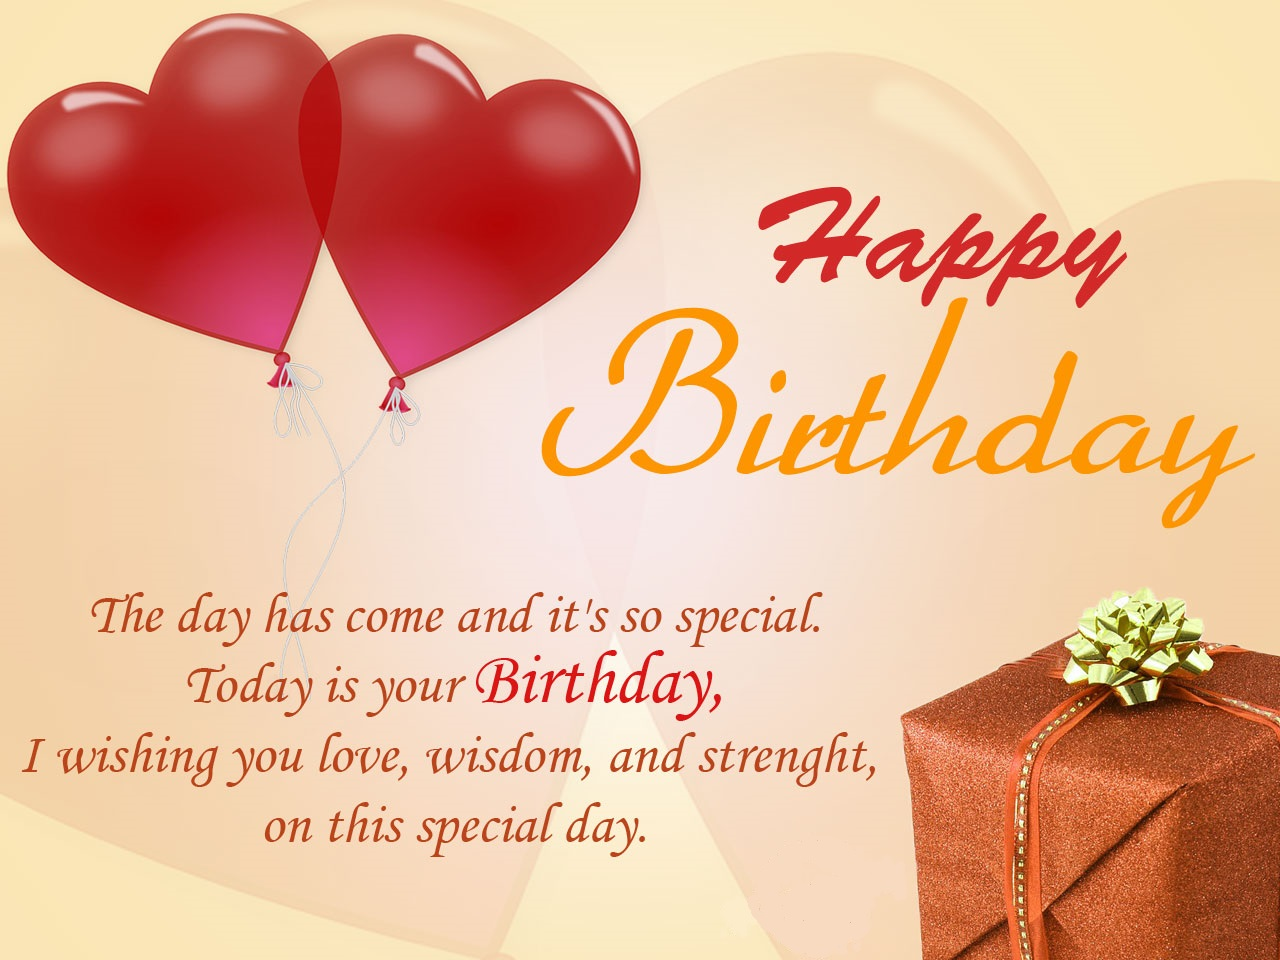 Happy Birthday Wishes With Love And Wisdom Nice Wishes